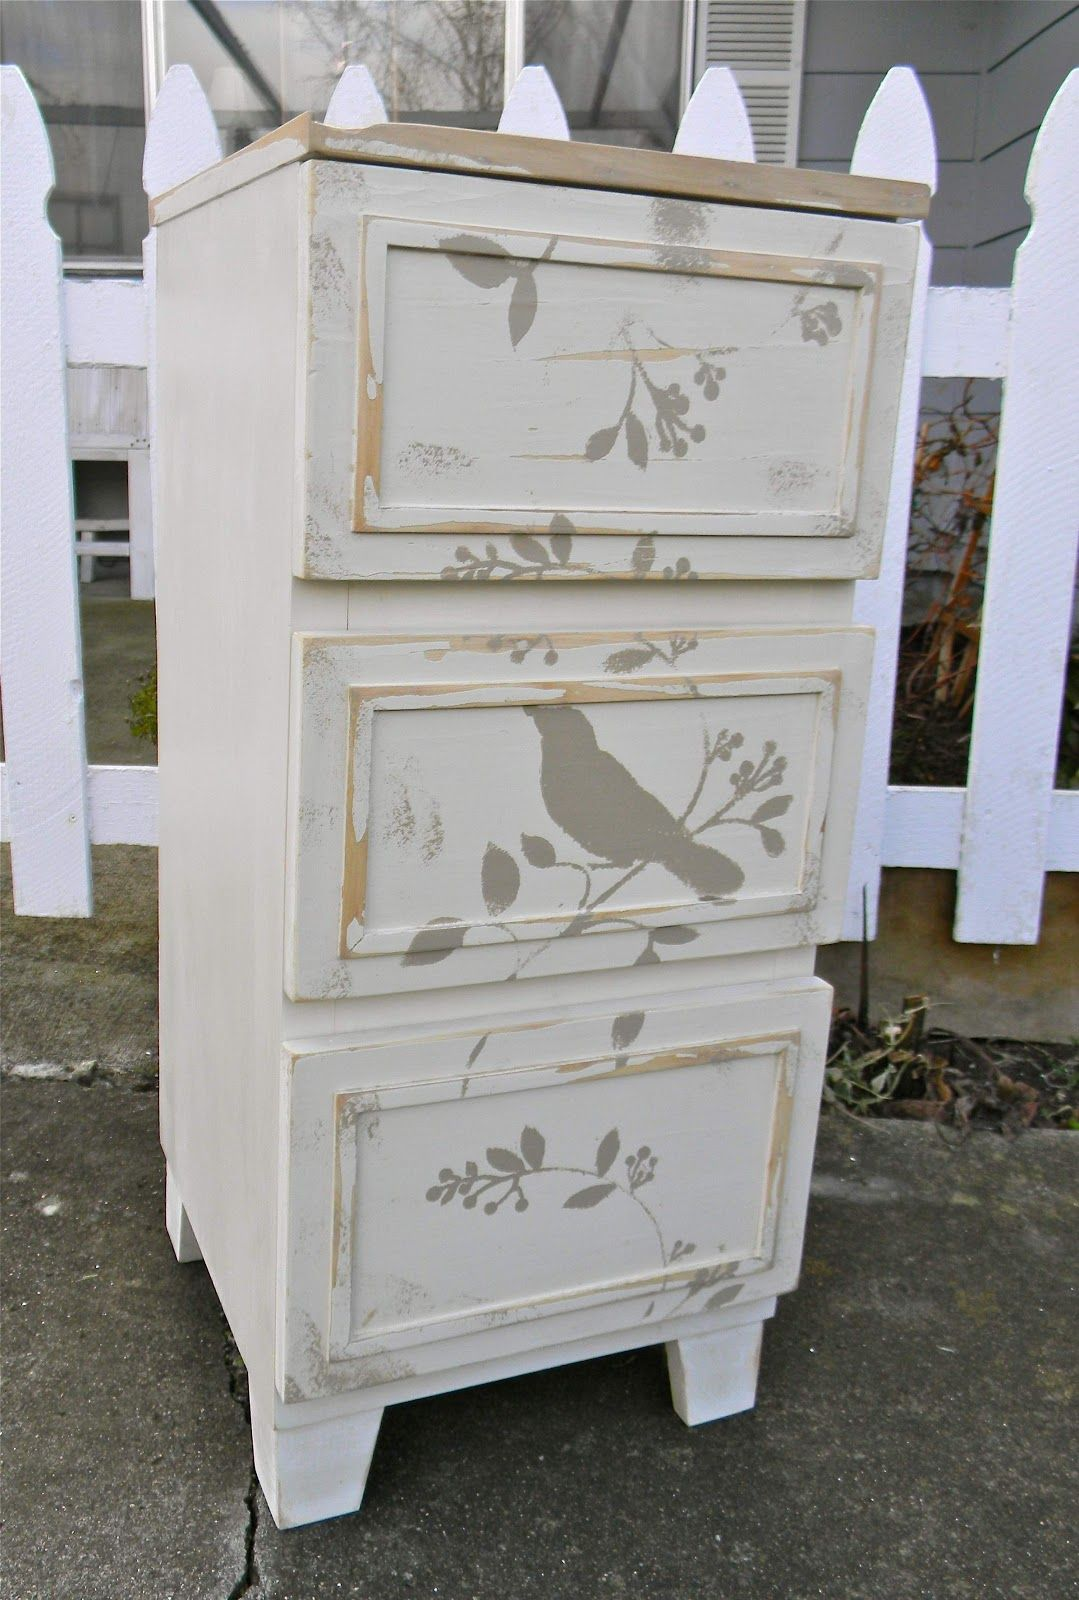 Emily S Up Cycled Furniture Tall Blue Grey Distressed Dresser: Emily's Up-cycled Furniture